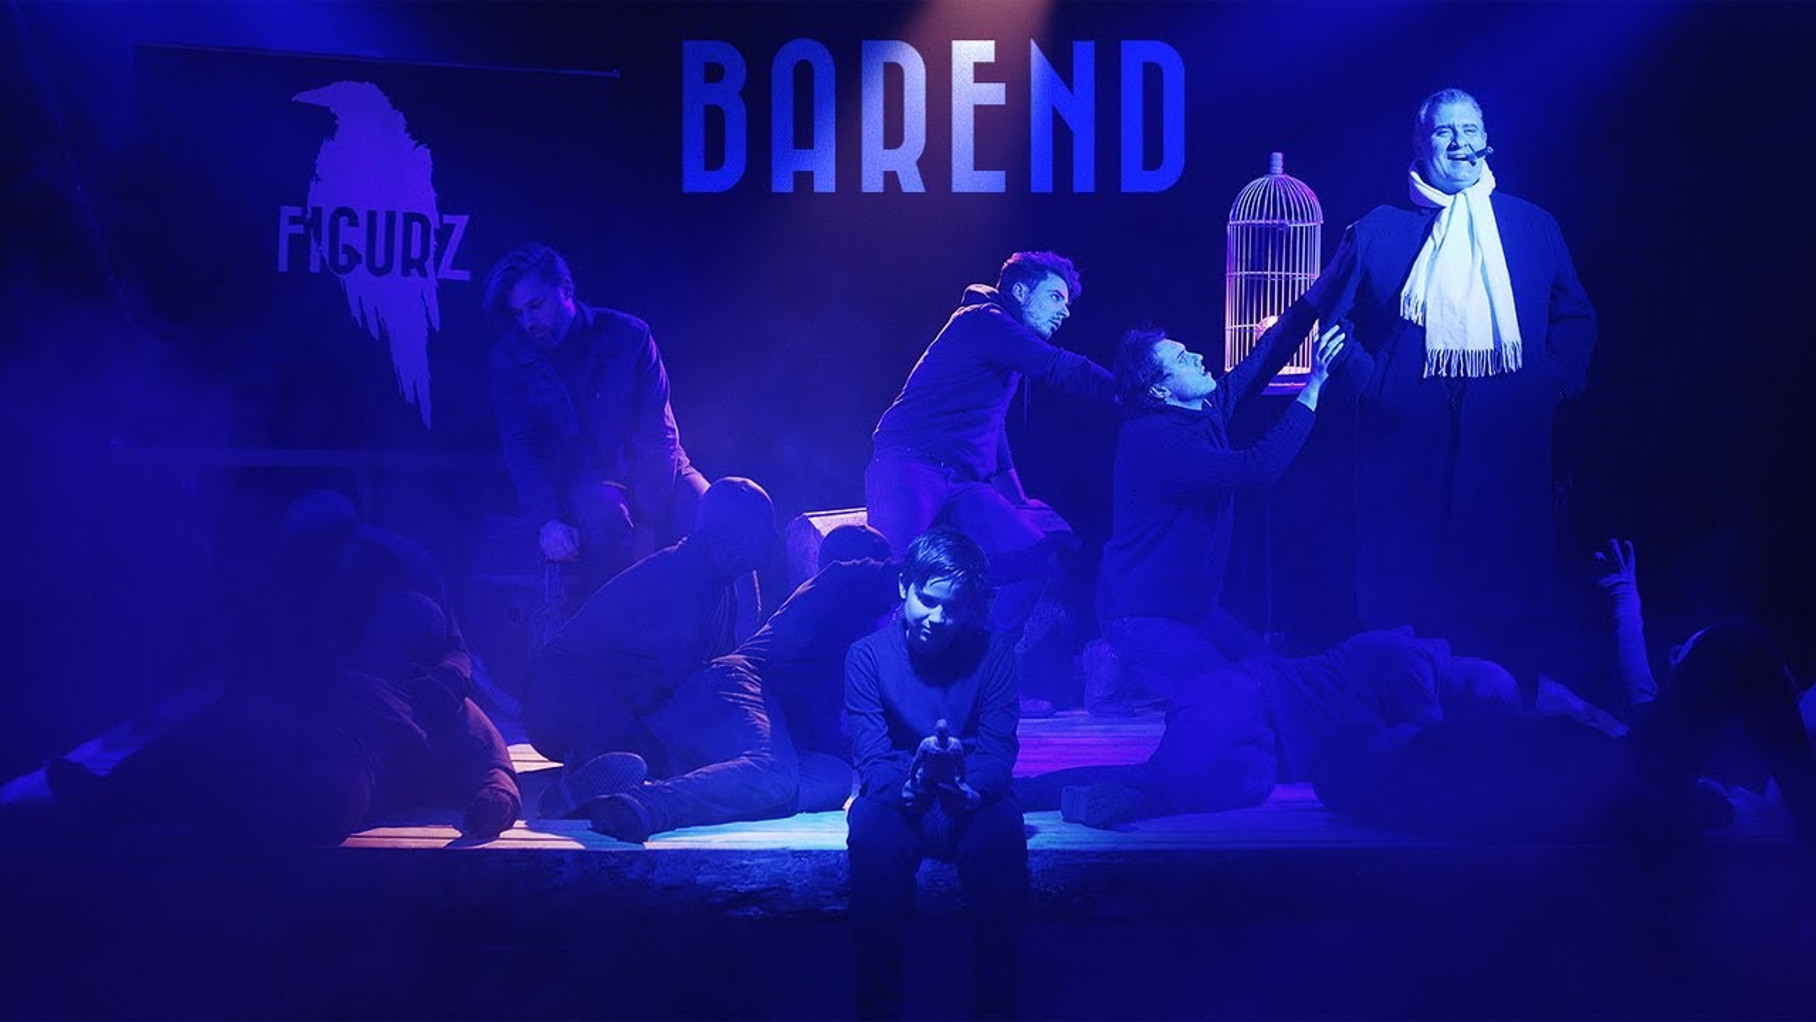 FIGURZ - Barend (Official Video)